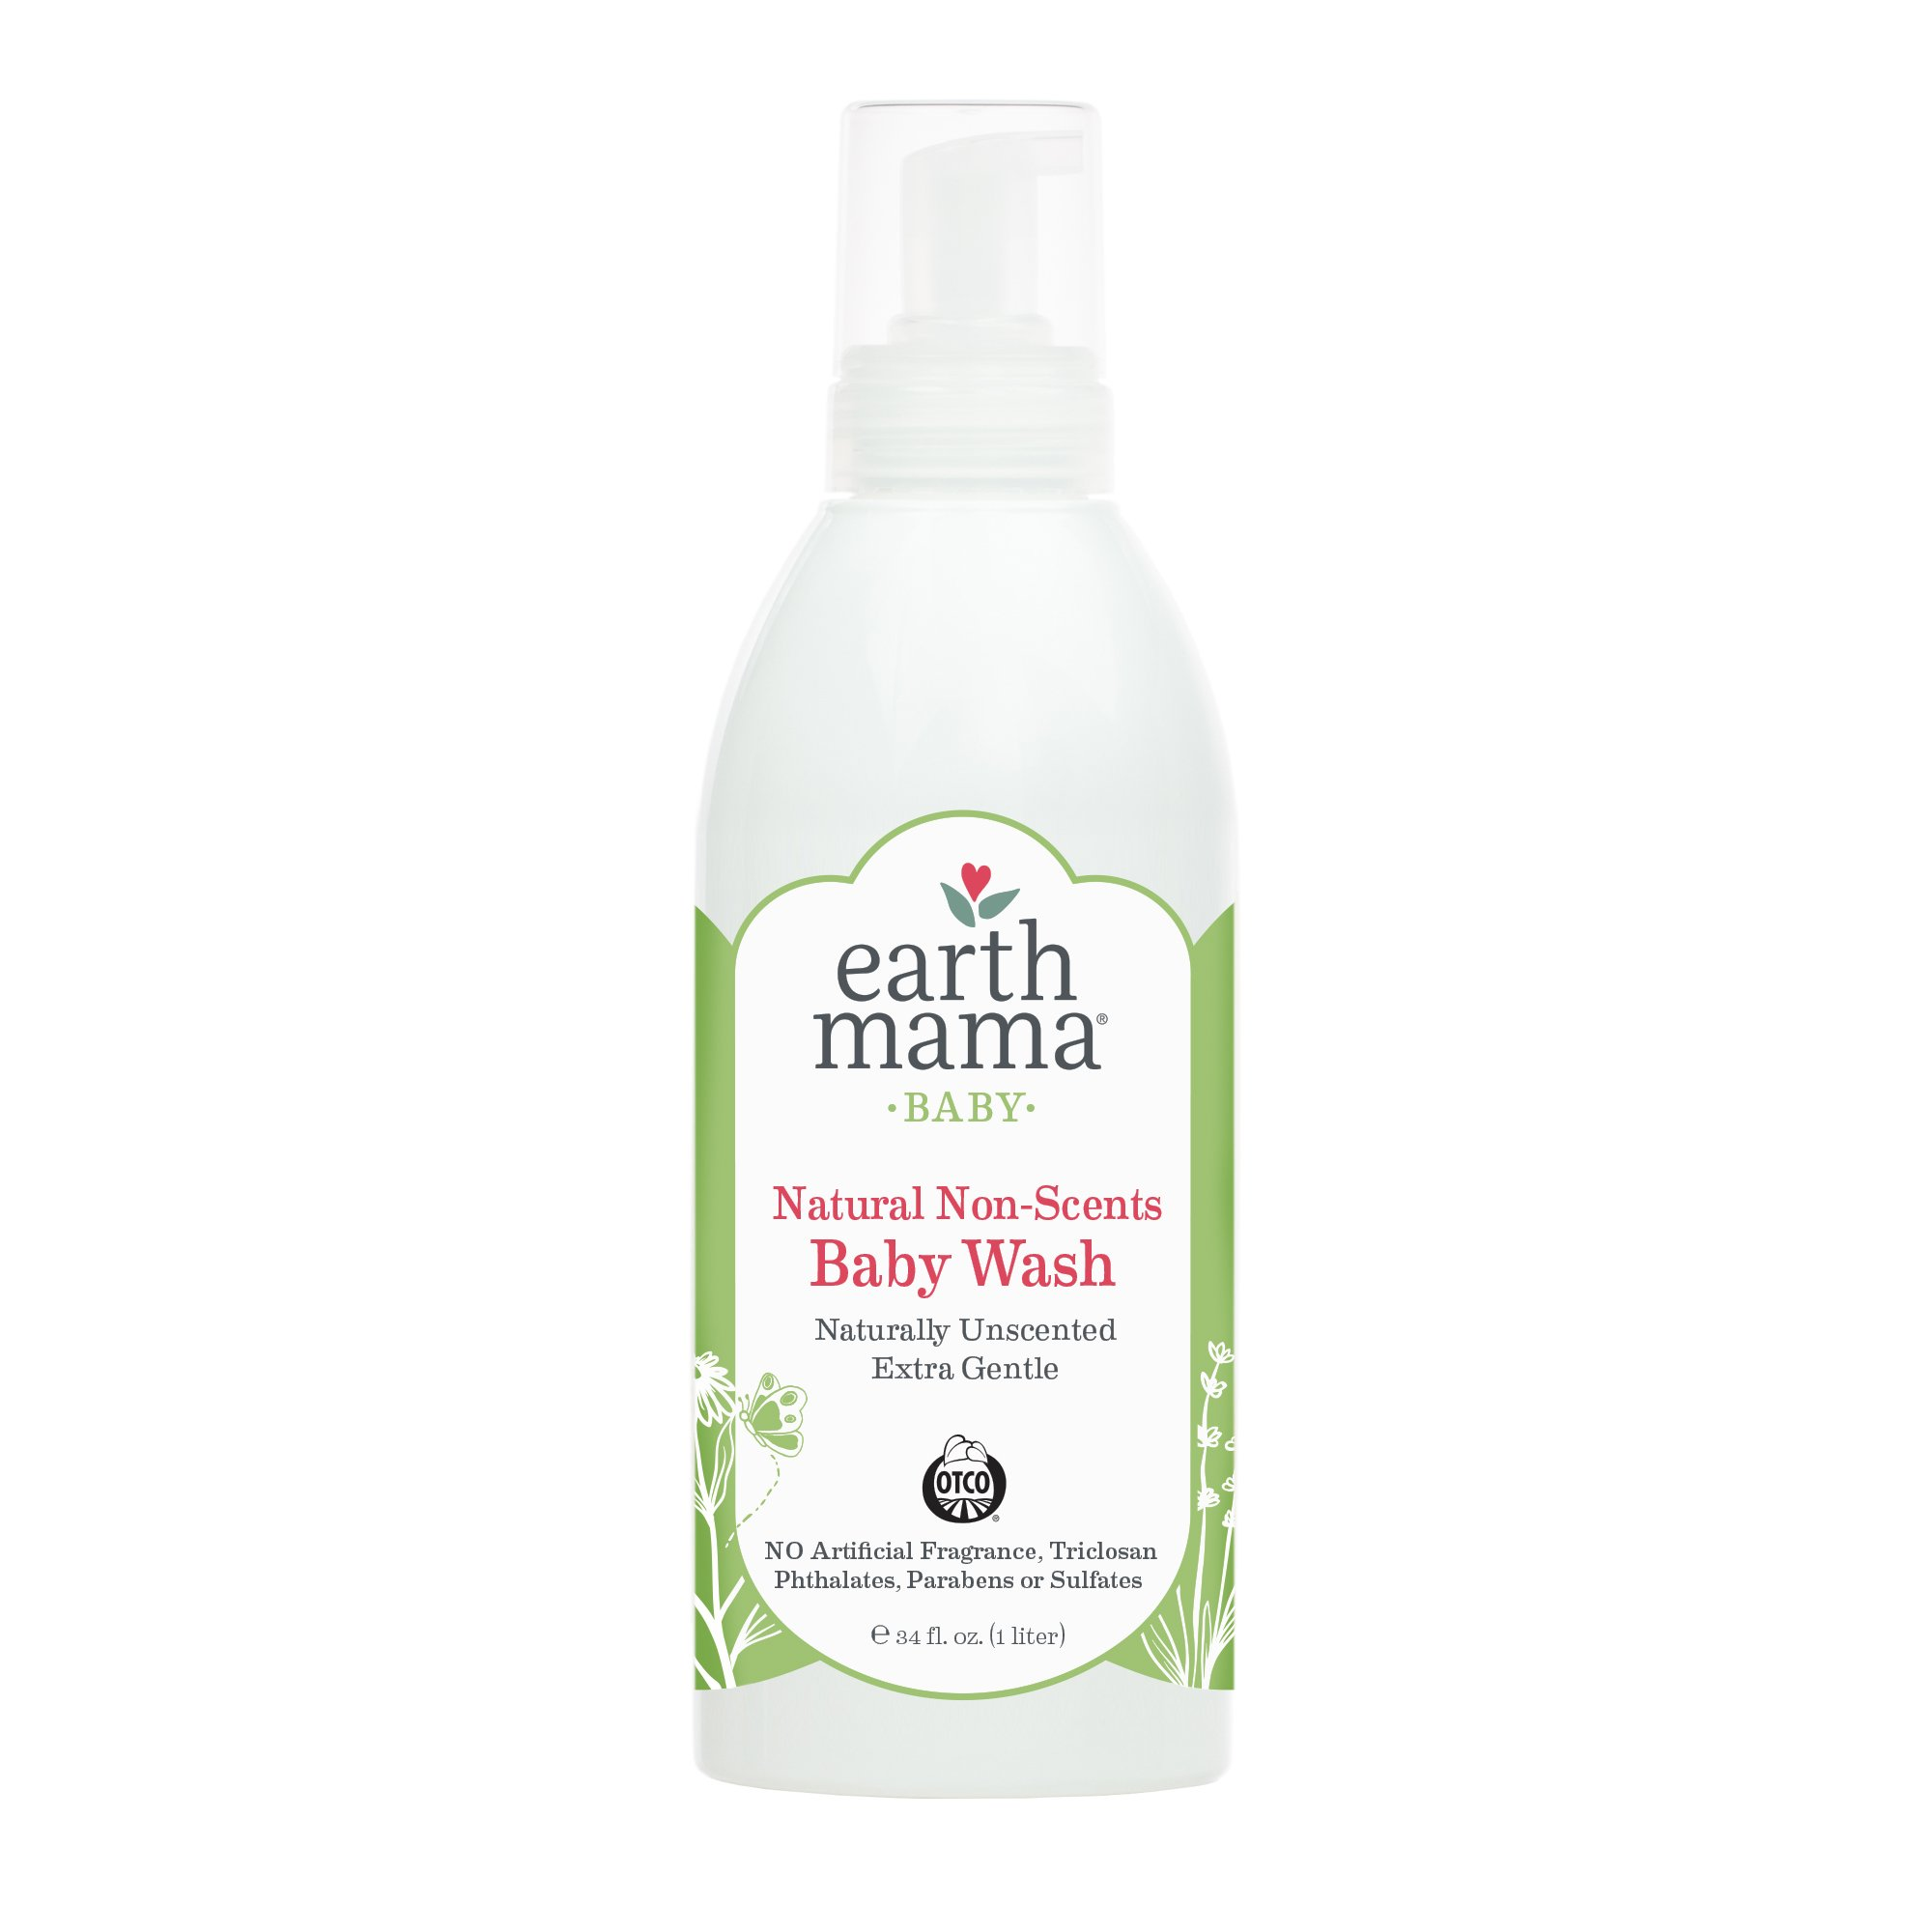 Earth Mama Natural Non-Scents Baby Wash Gentle Castile Soap for Sensitive Skin, 34-Fluid Ounce by Earth Mama (Image #1)